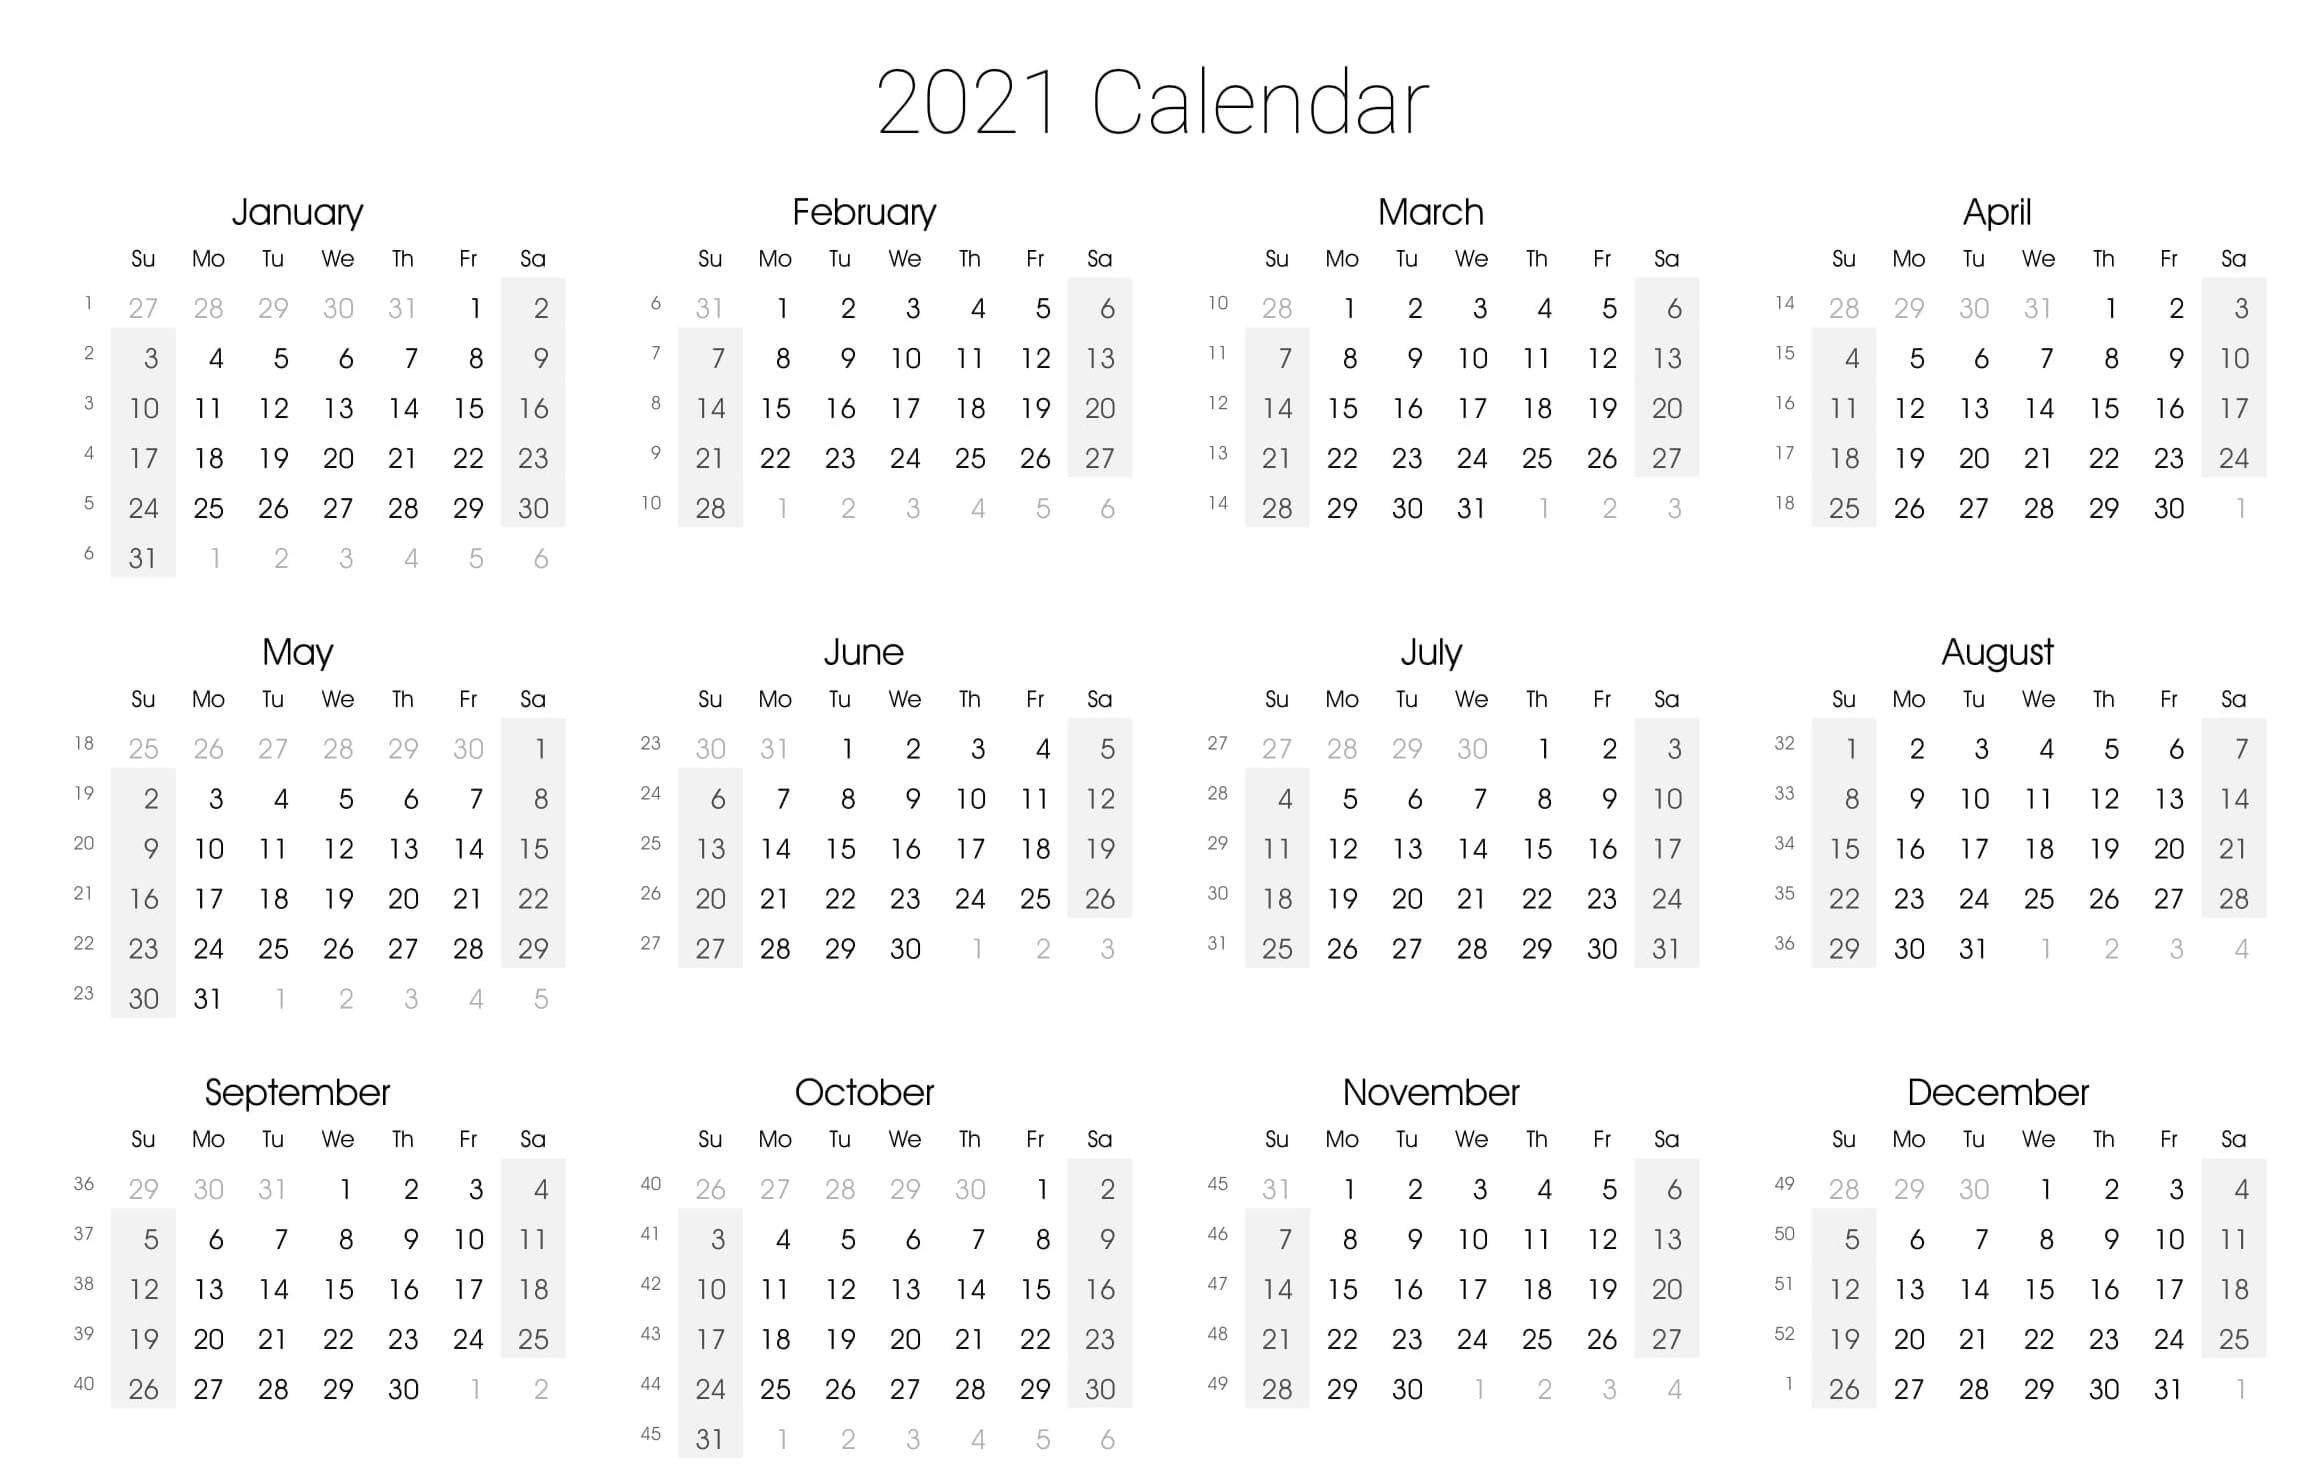 Yearly Calendar With Notes 2021 Editable Template - Set-2021 Calendar Fillable